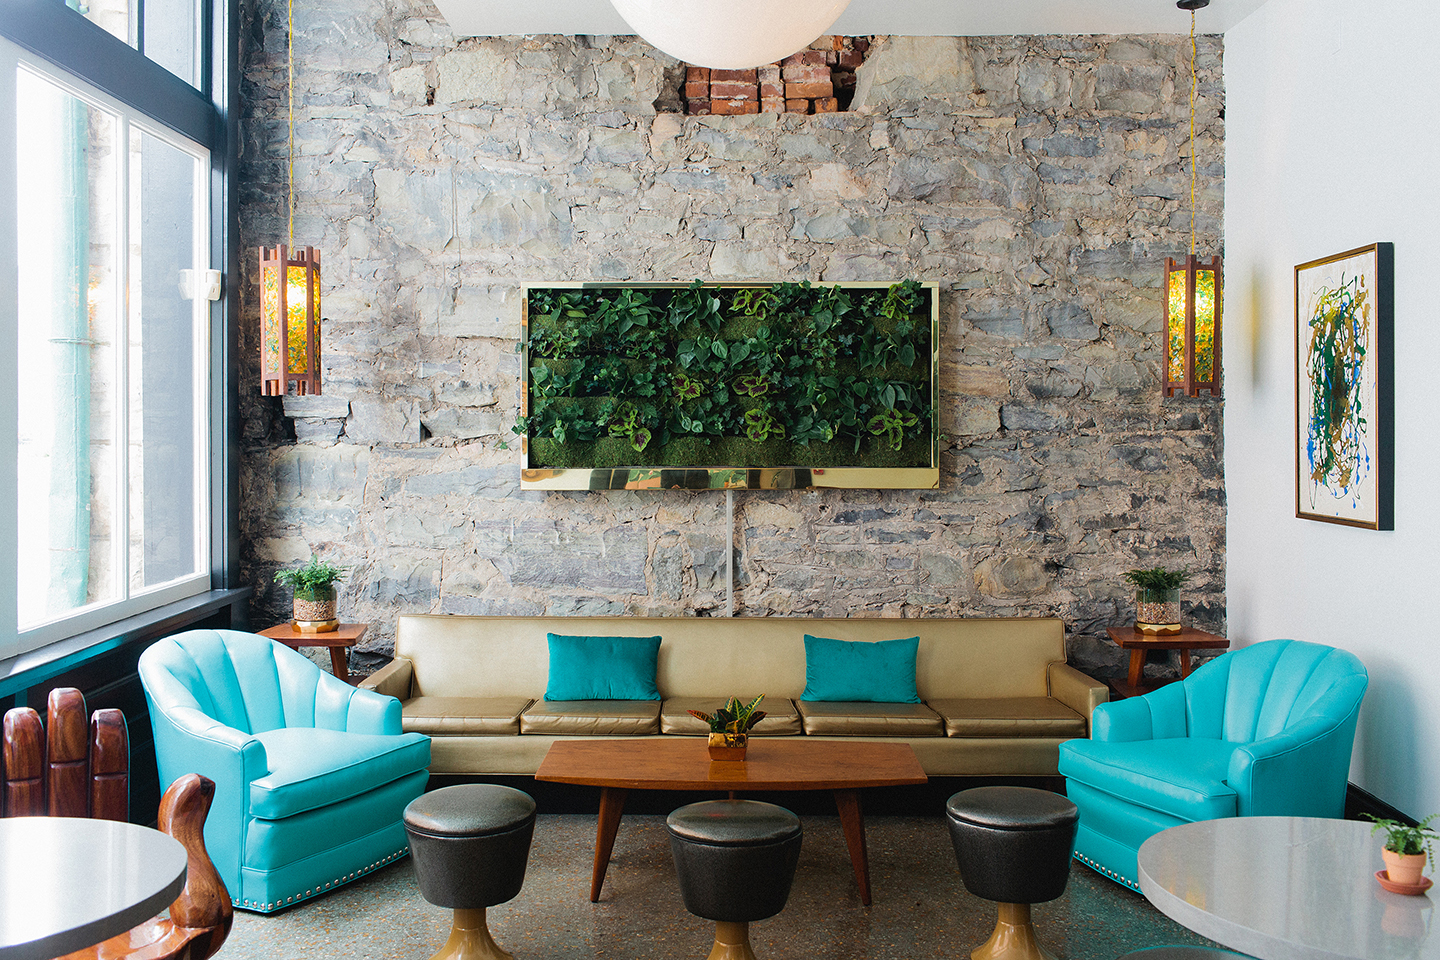 Dwell Hotel, Matilda Midnight Parlor, Photographed by: Graham Yelton - Life-Styled.net